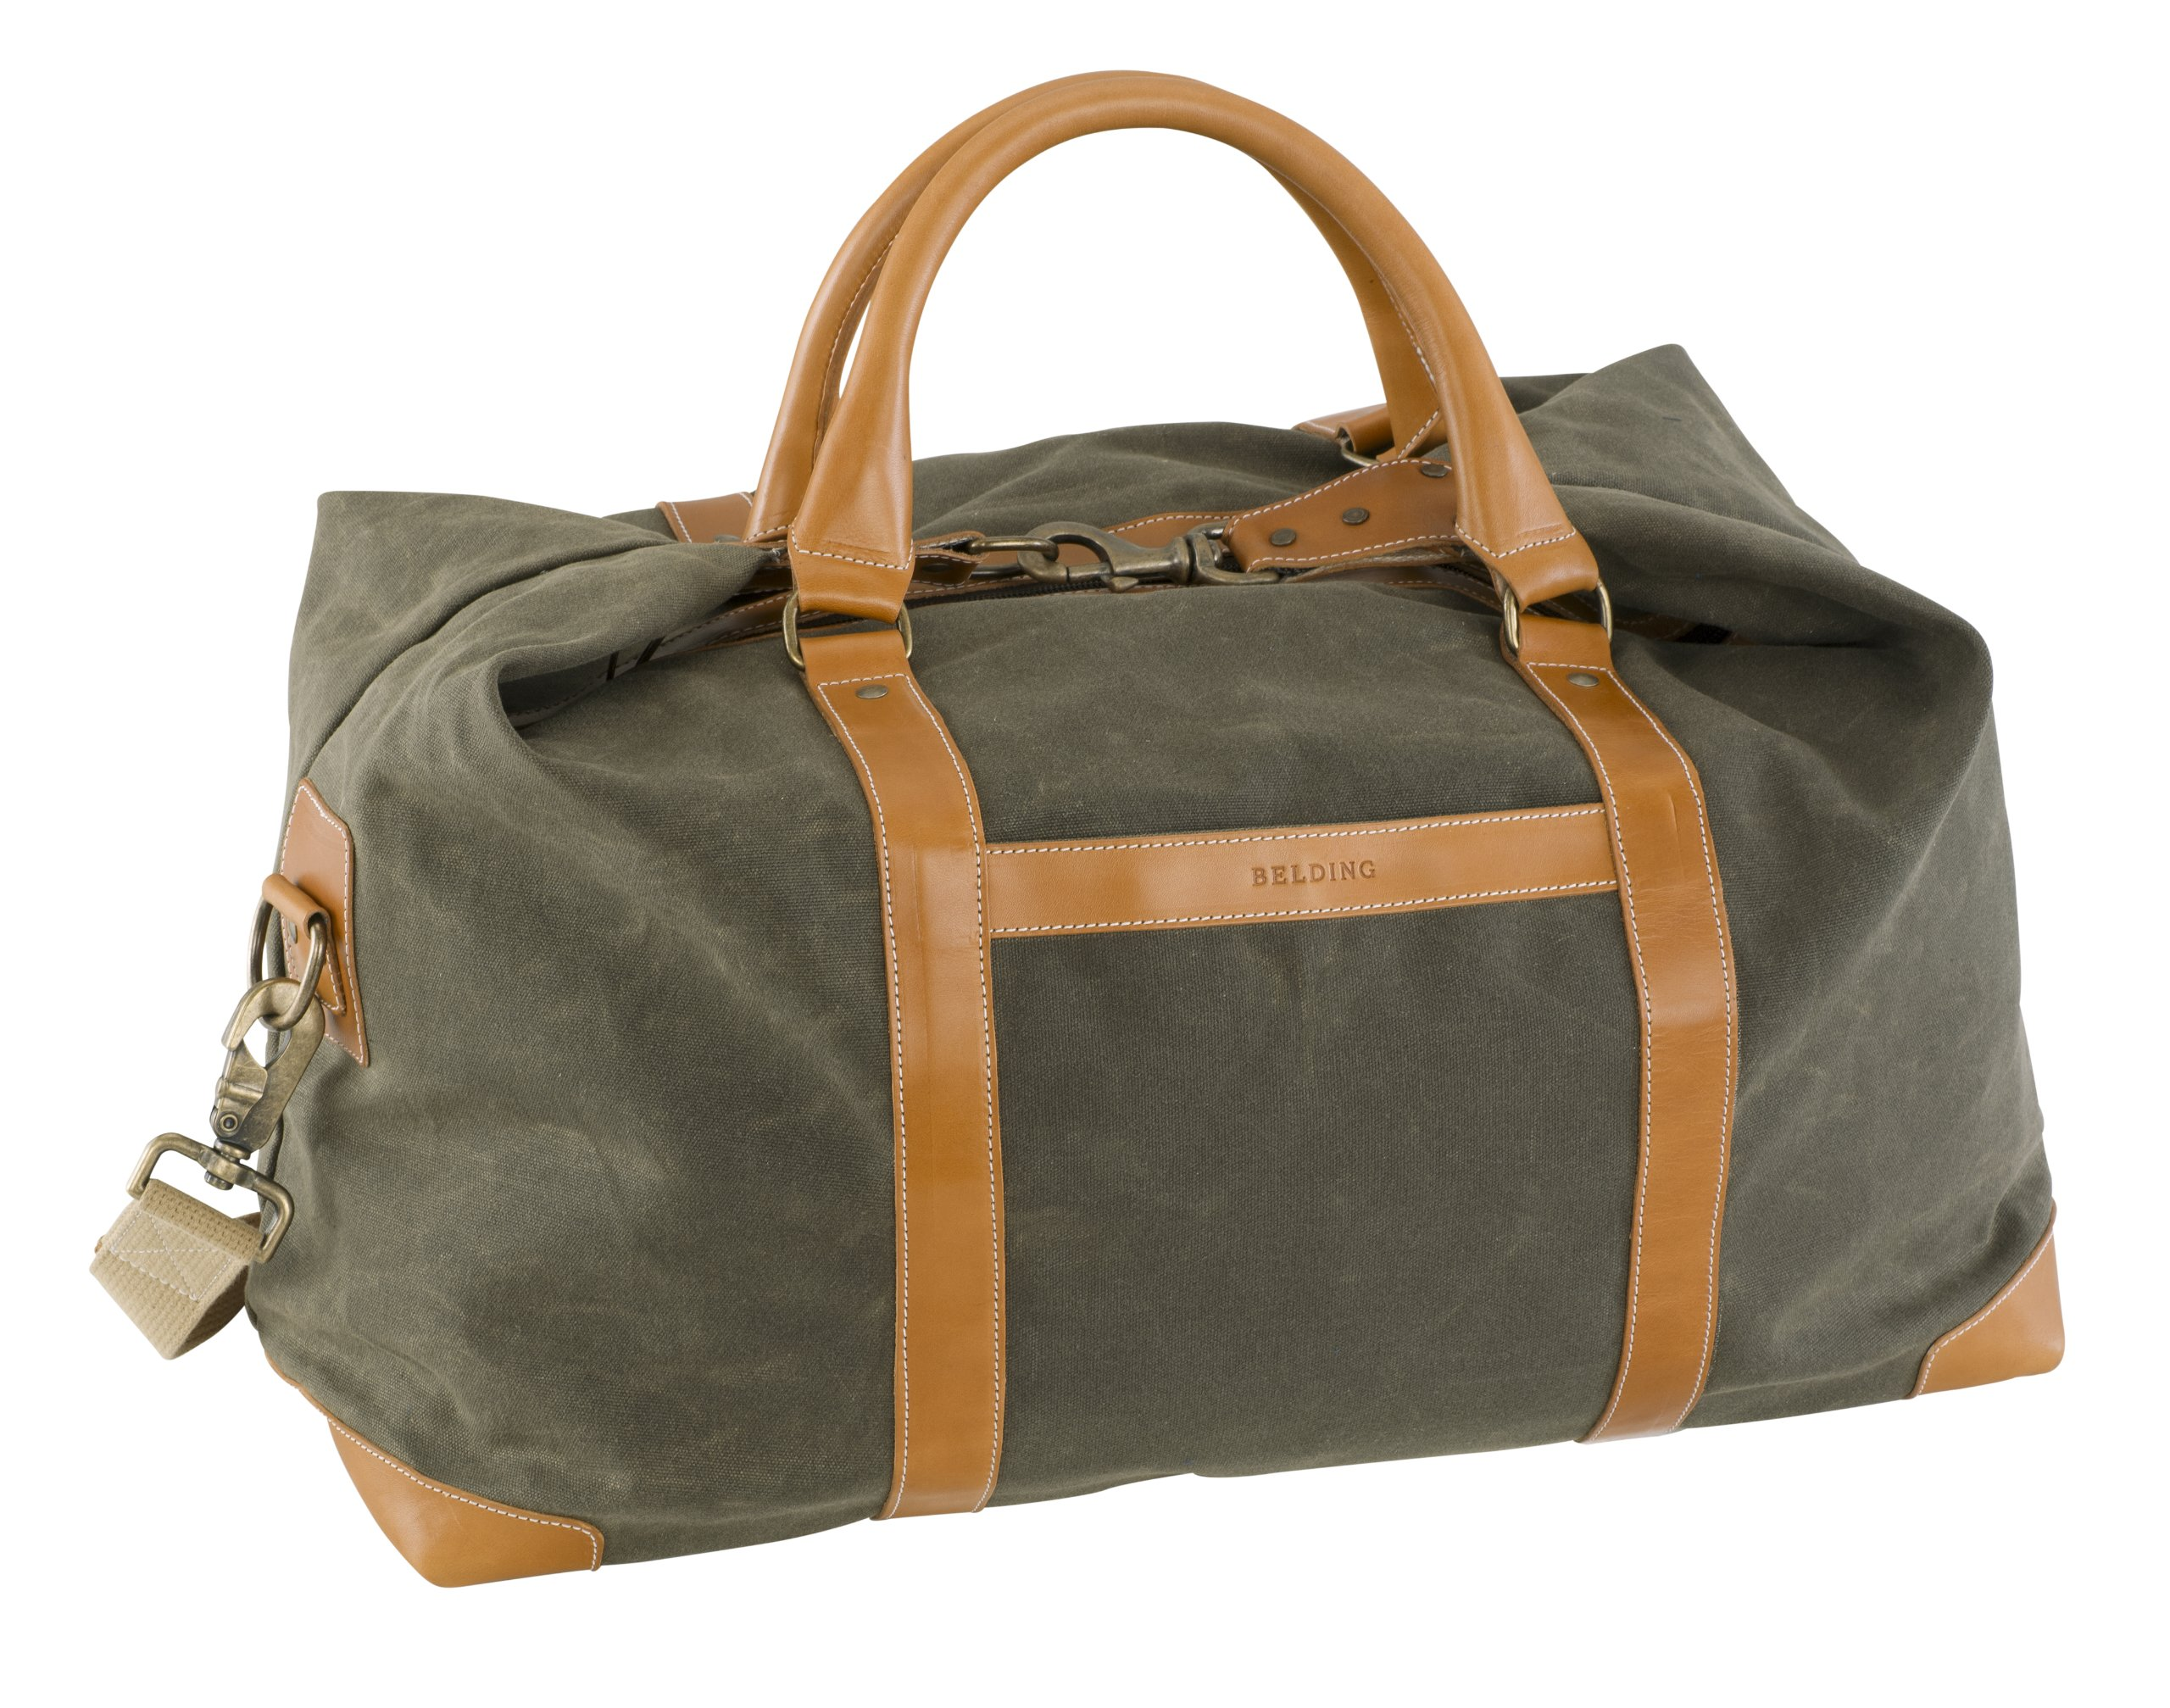 BELDING American Collection Satchel Duffle Bag, Sage